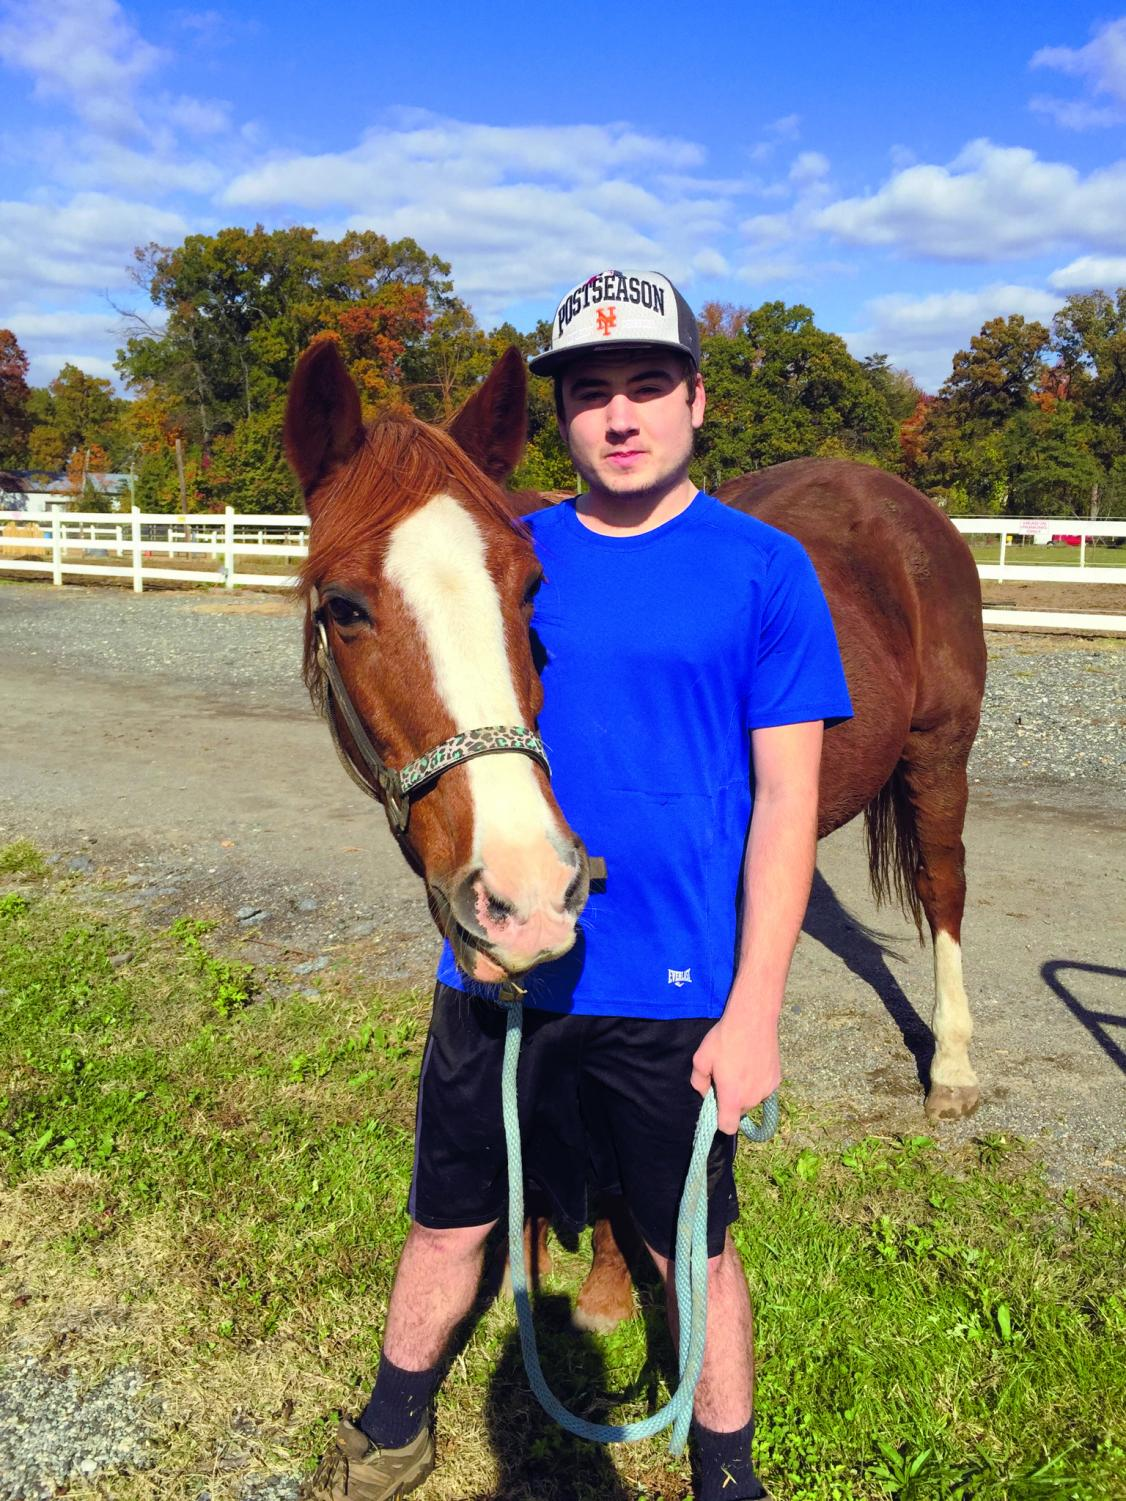 Second-year undecided student Shay Meany used horse therapy to overcome his speech impediment.